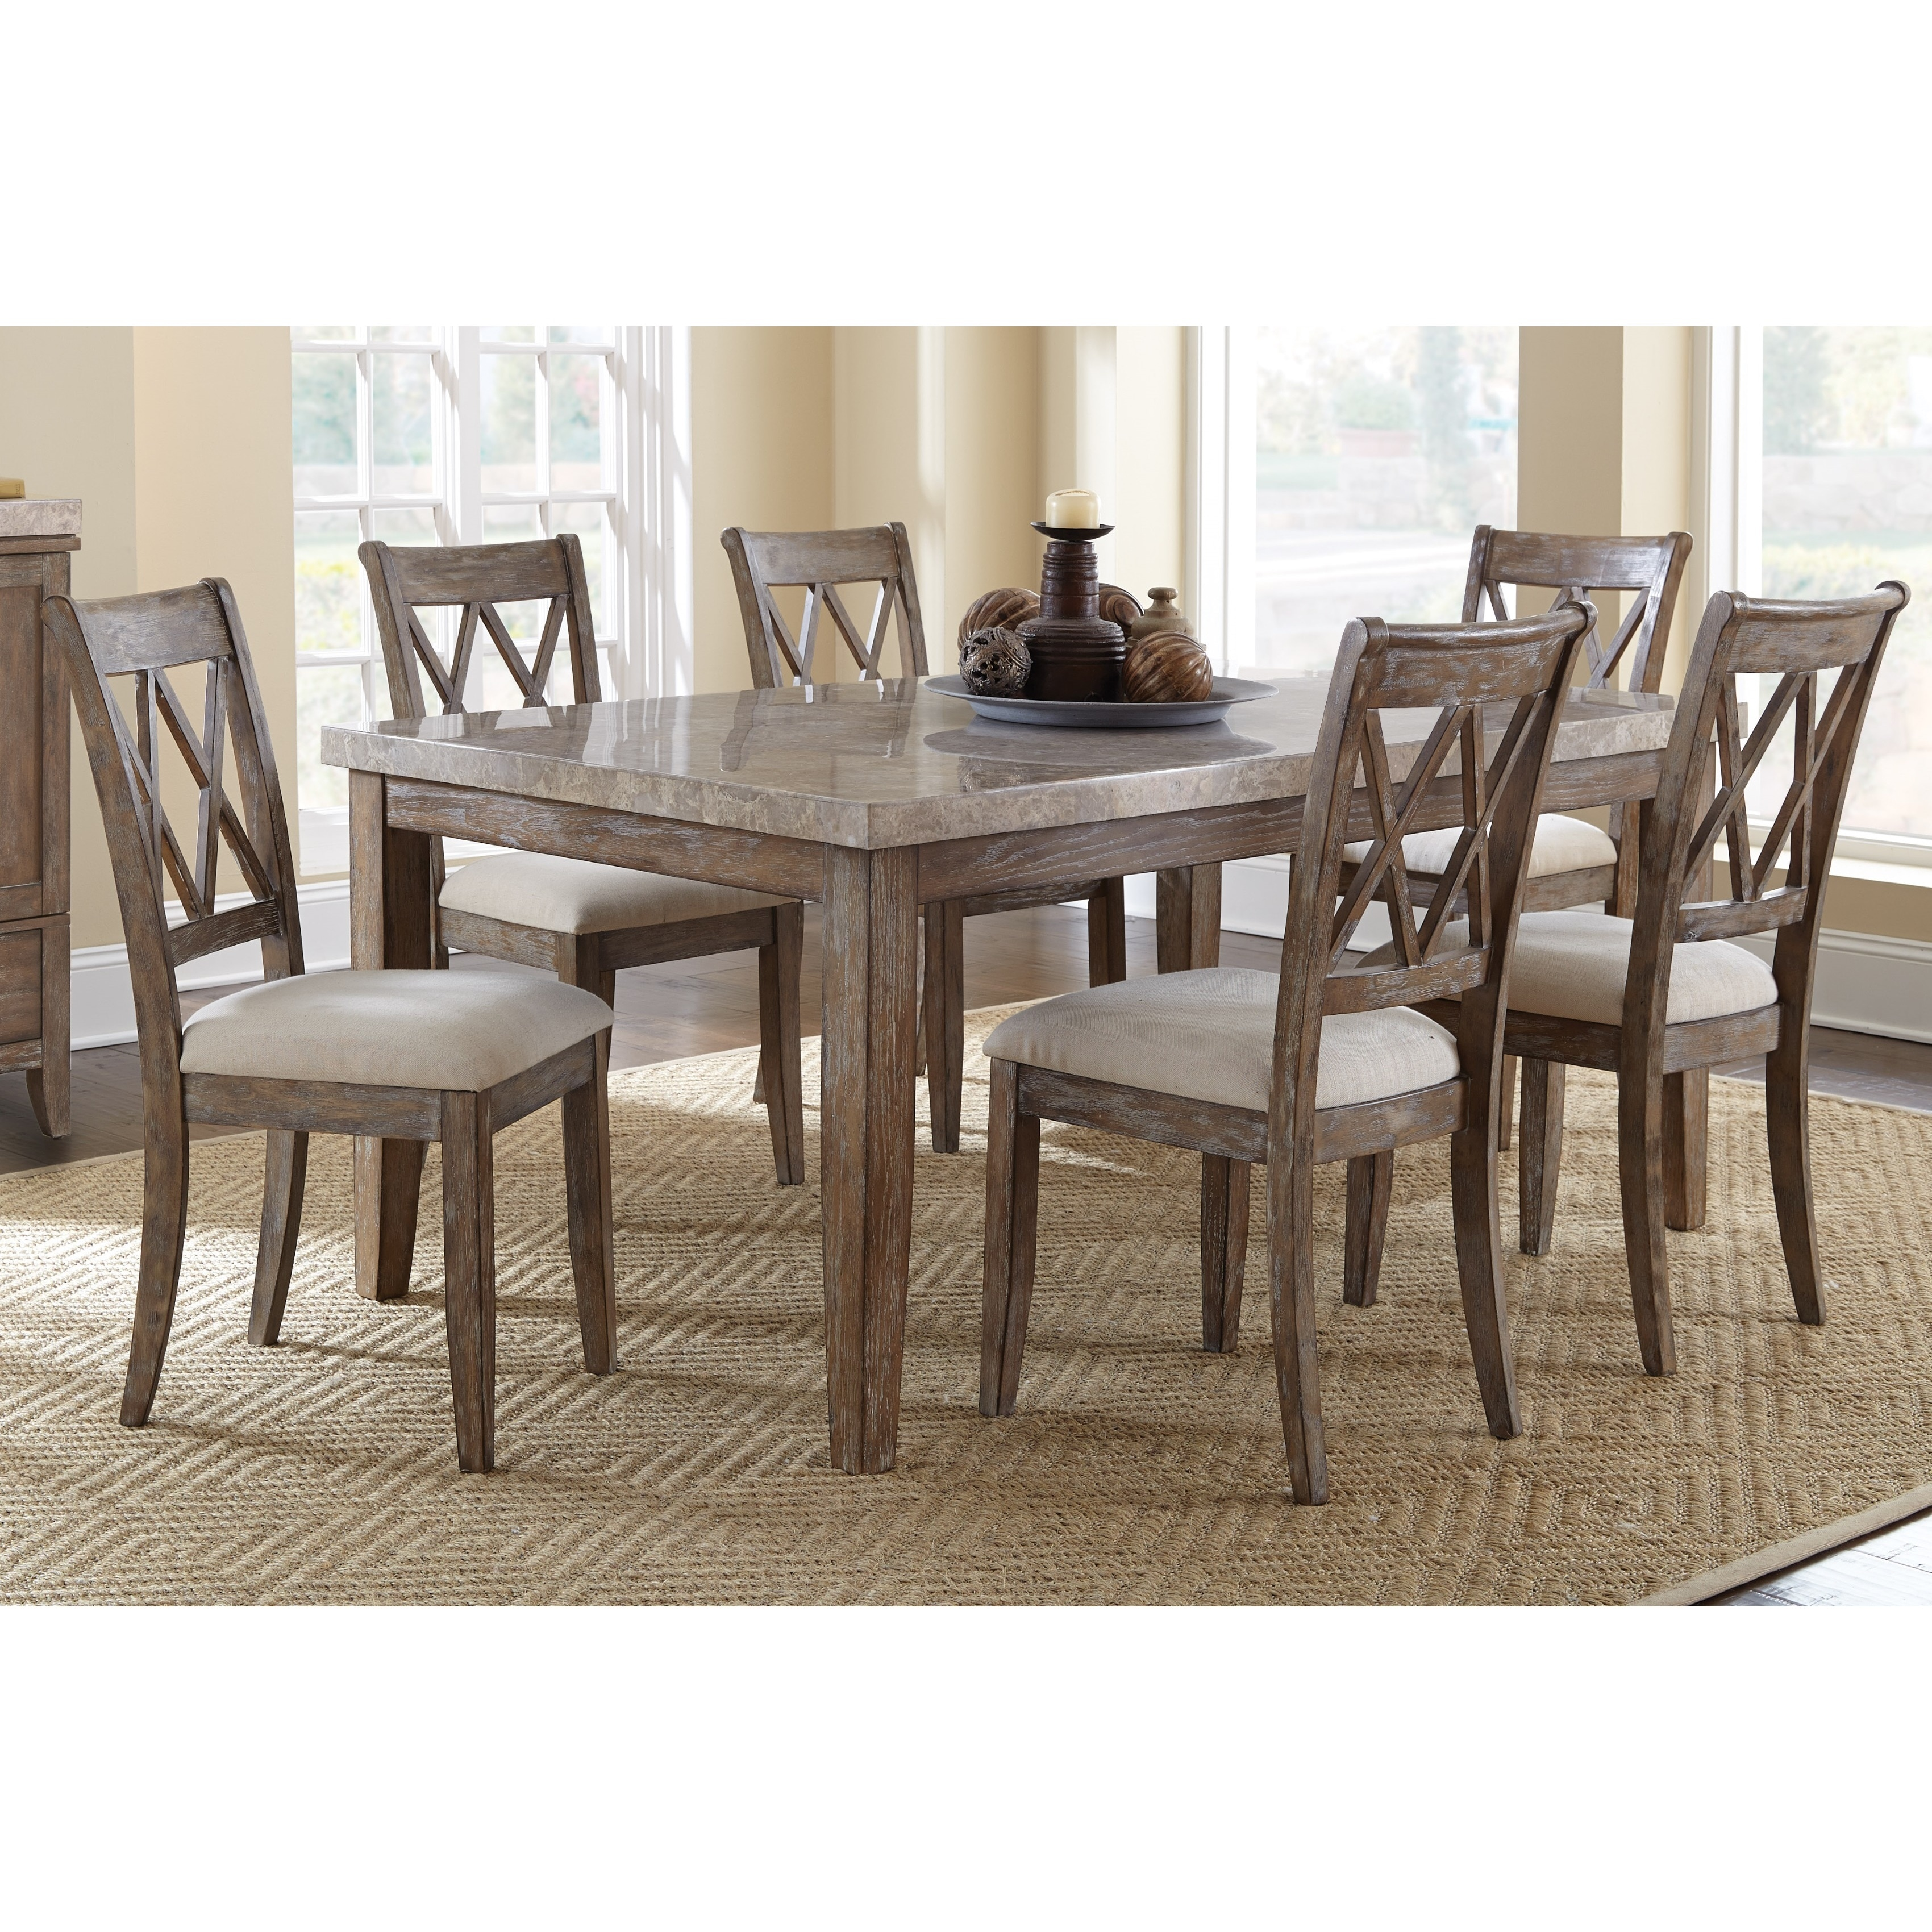 Shop Greyson Living Fulham Marble Top Dining Set Free